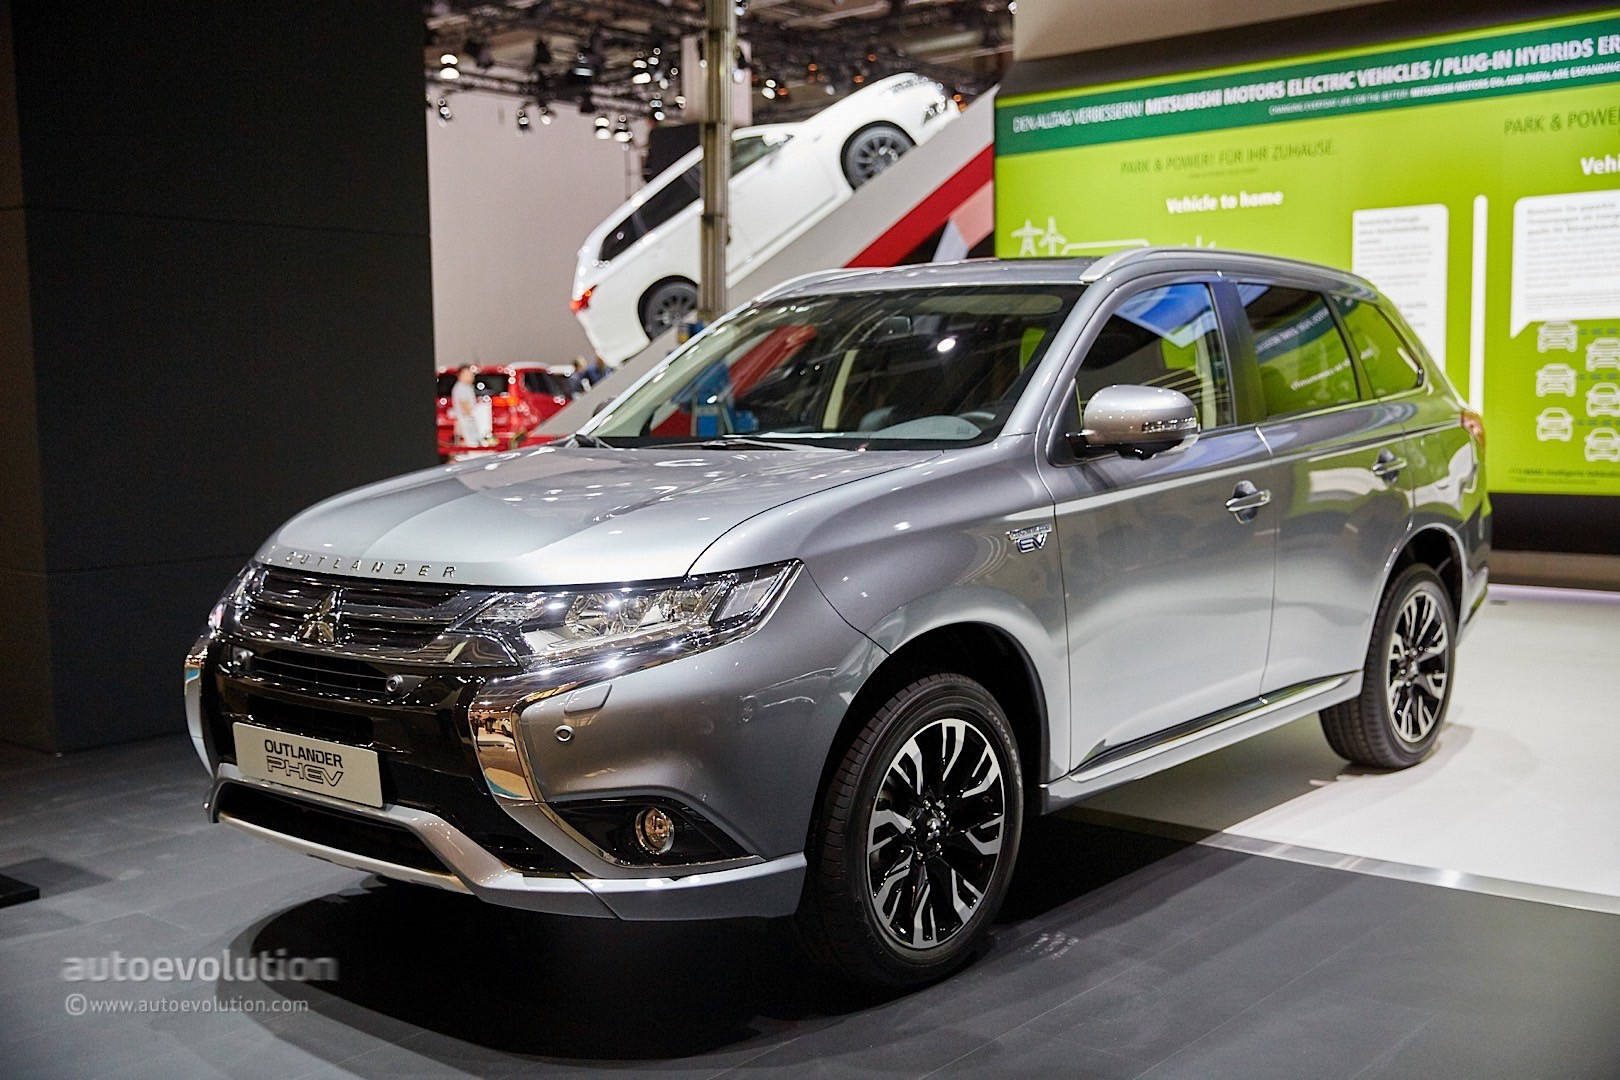 2019 Mitsubishi Outlander Turbo European Version photo - 6